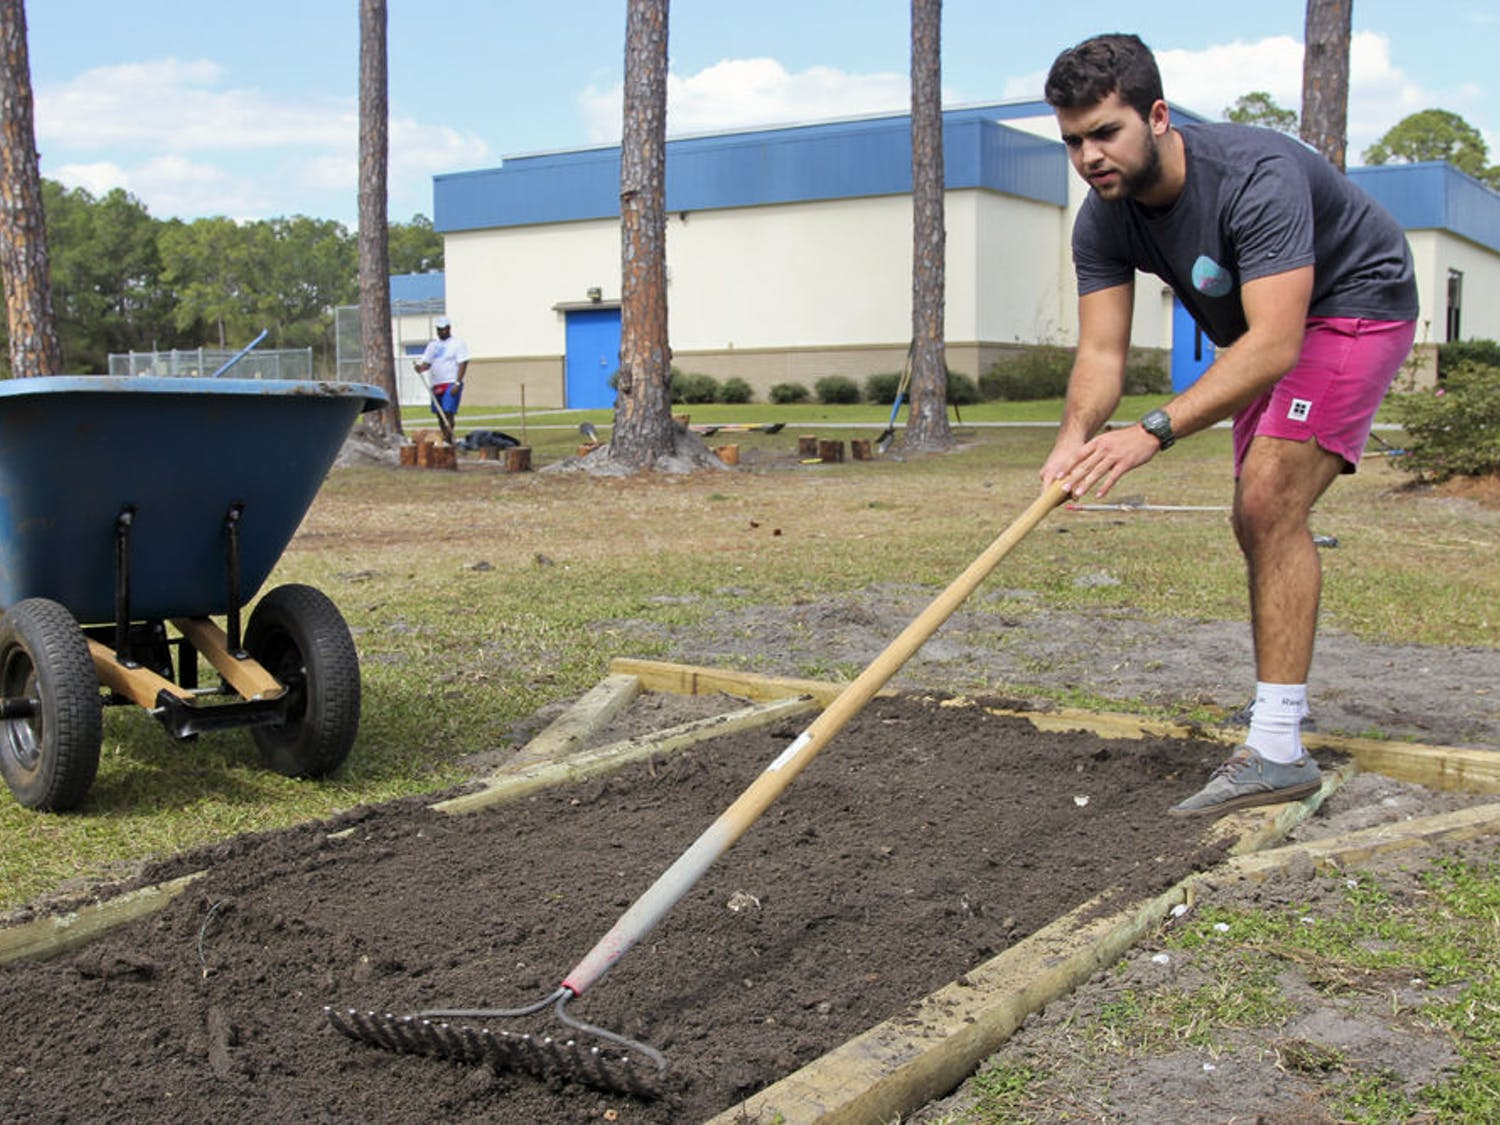 Jack Cheney, a UF marketing freshman, levels out dirt by the playground at Marjorie Kinnan Rawlings Elementary School on Sunday. The 18-year-old volunteered as part of a landscaping team during Project Makeover.